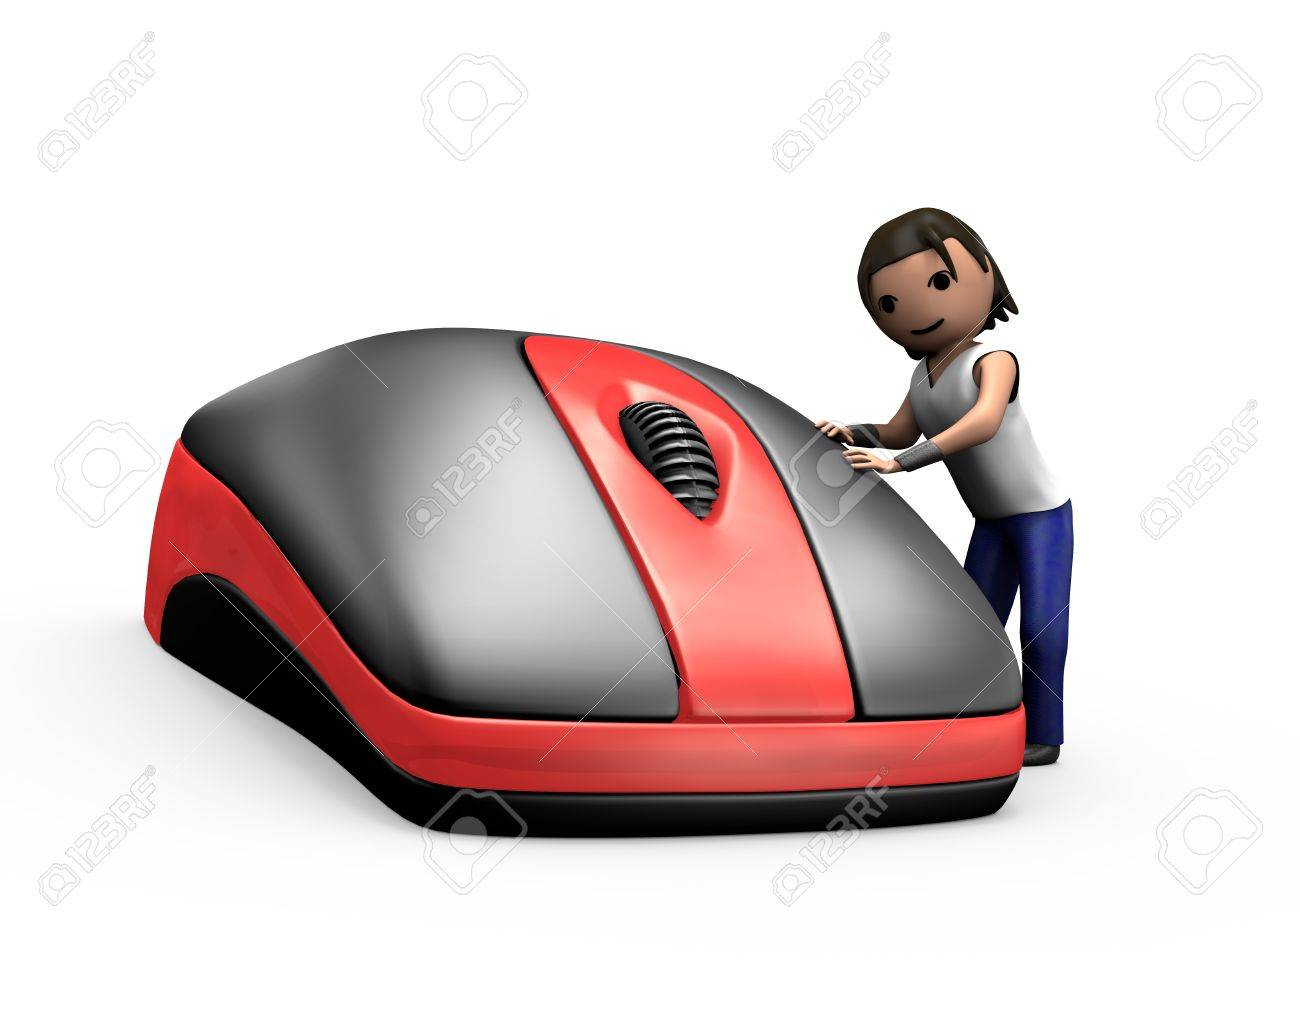 3d Render of Young Guy Clicking PC Mouse - 7841846